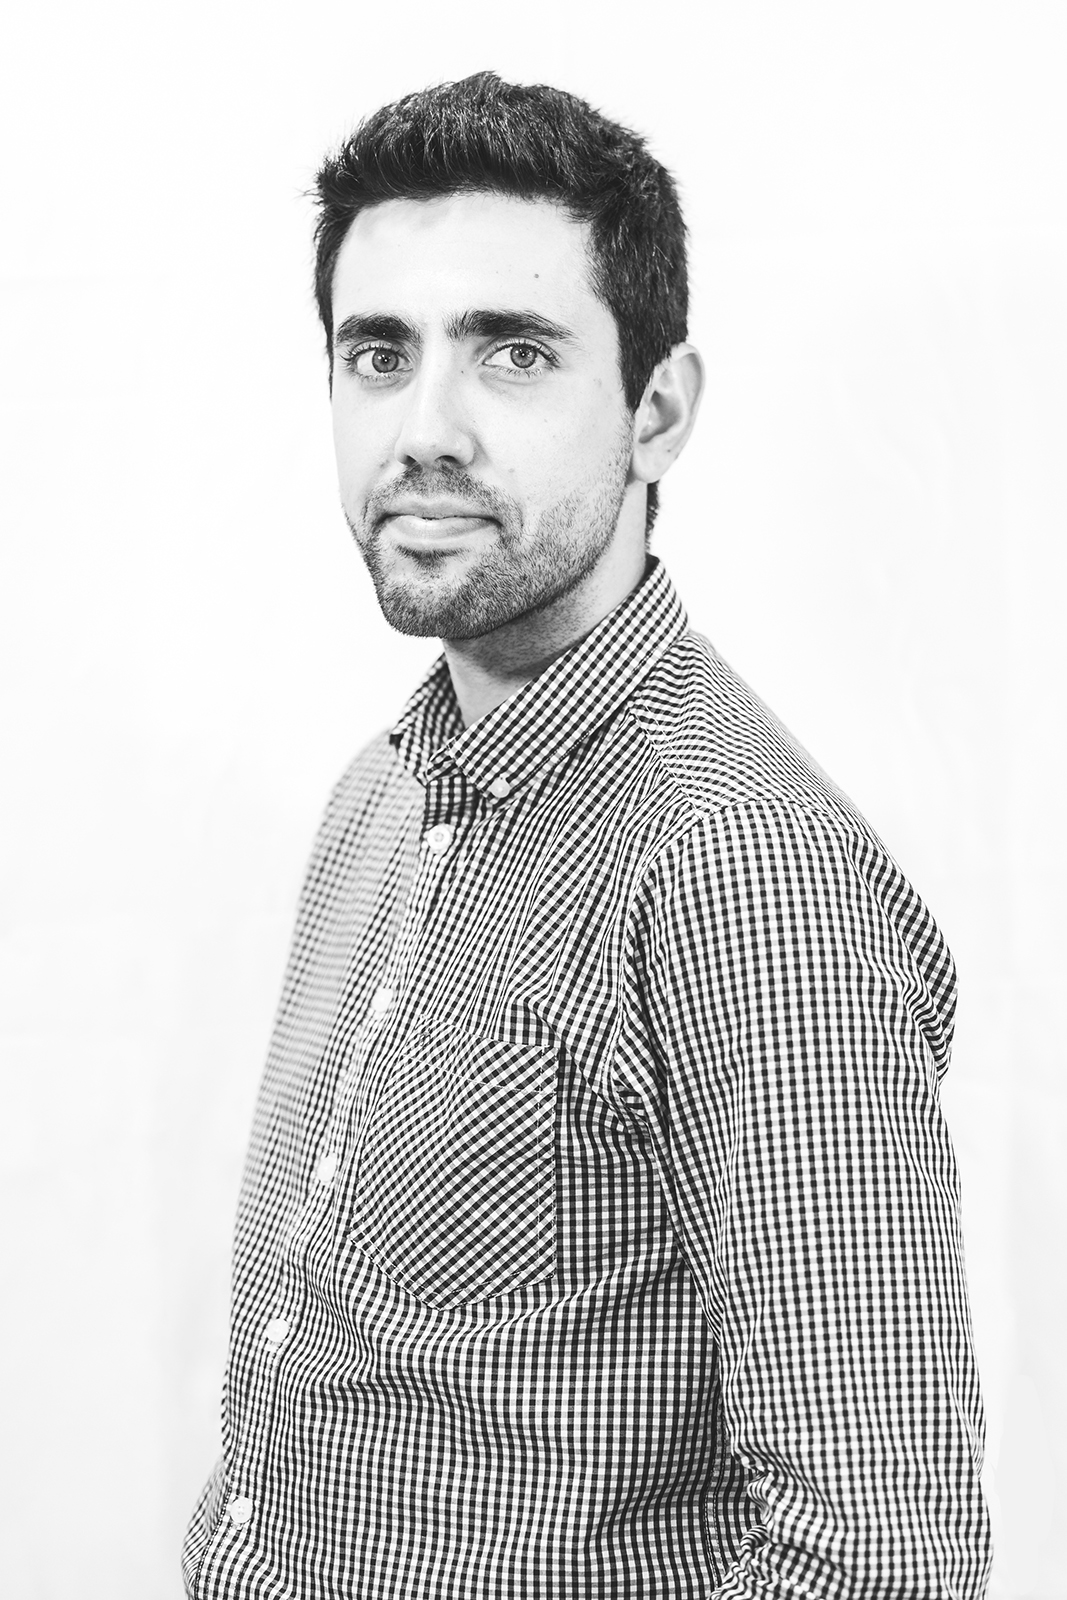 Stathis Panetas - Assistant Project Manager